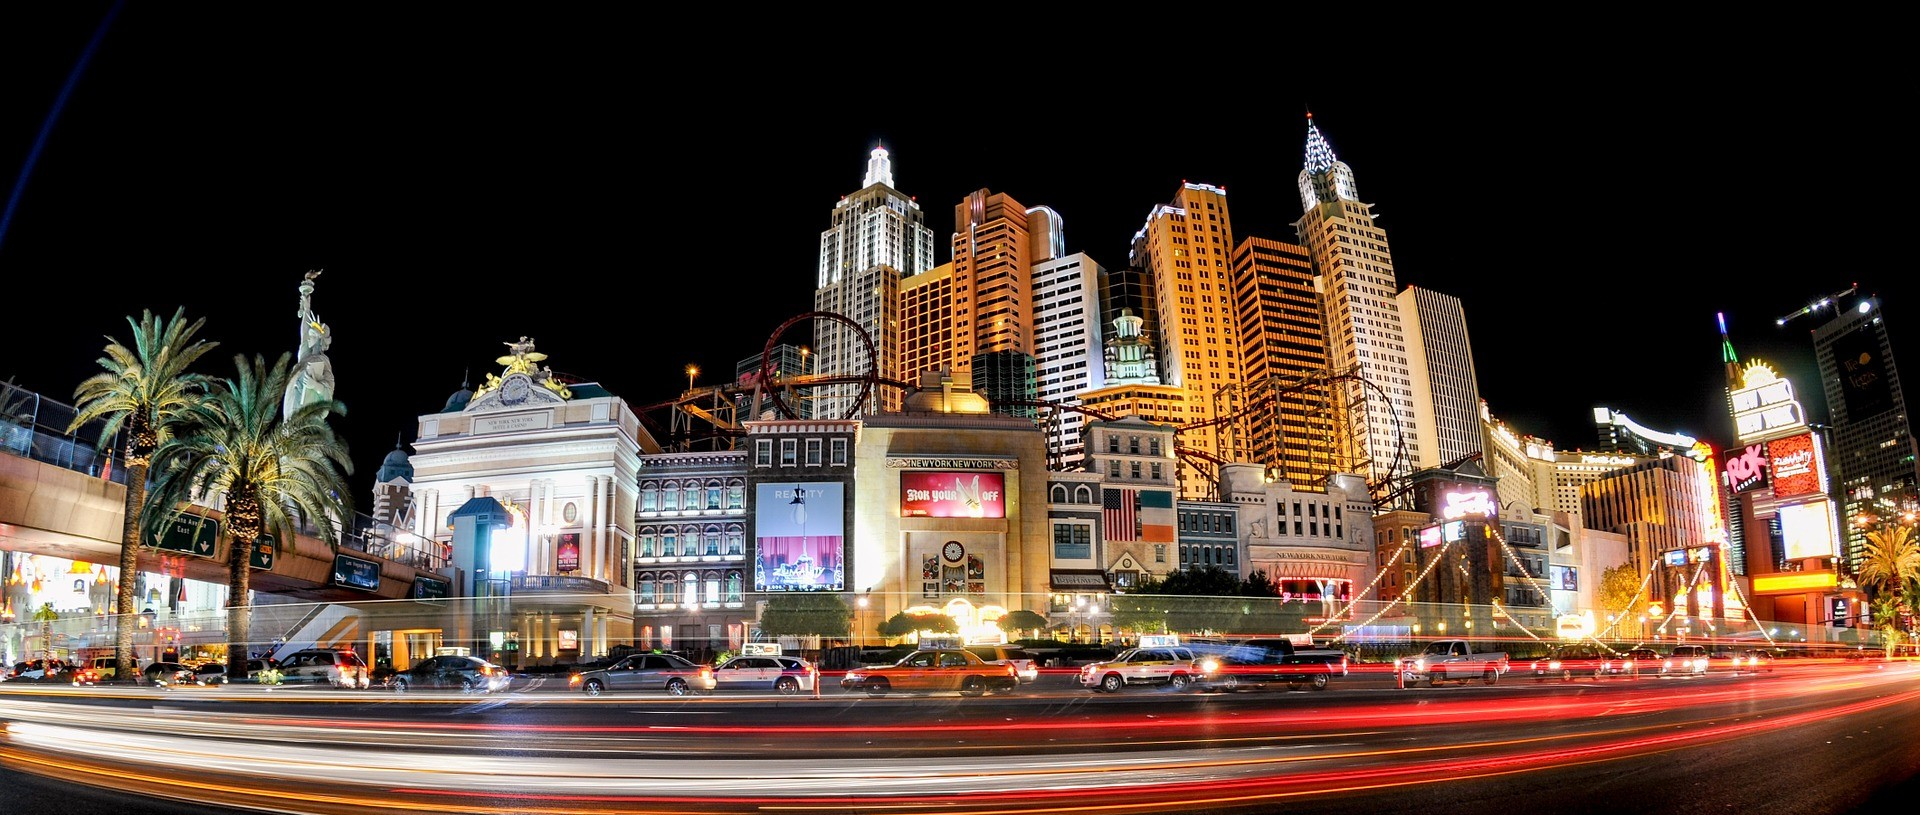 25+Best+Things+to+Do+in+Las+Vegas+(That+Aren't+Gambling)!+-+It's+Not+About+the+Miles...